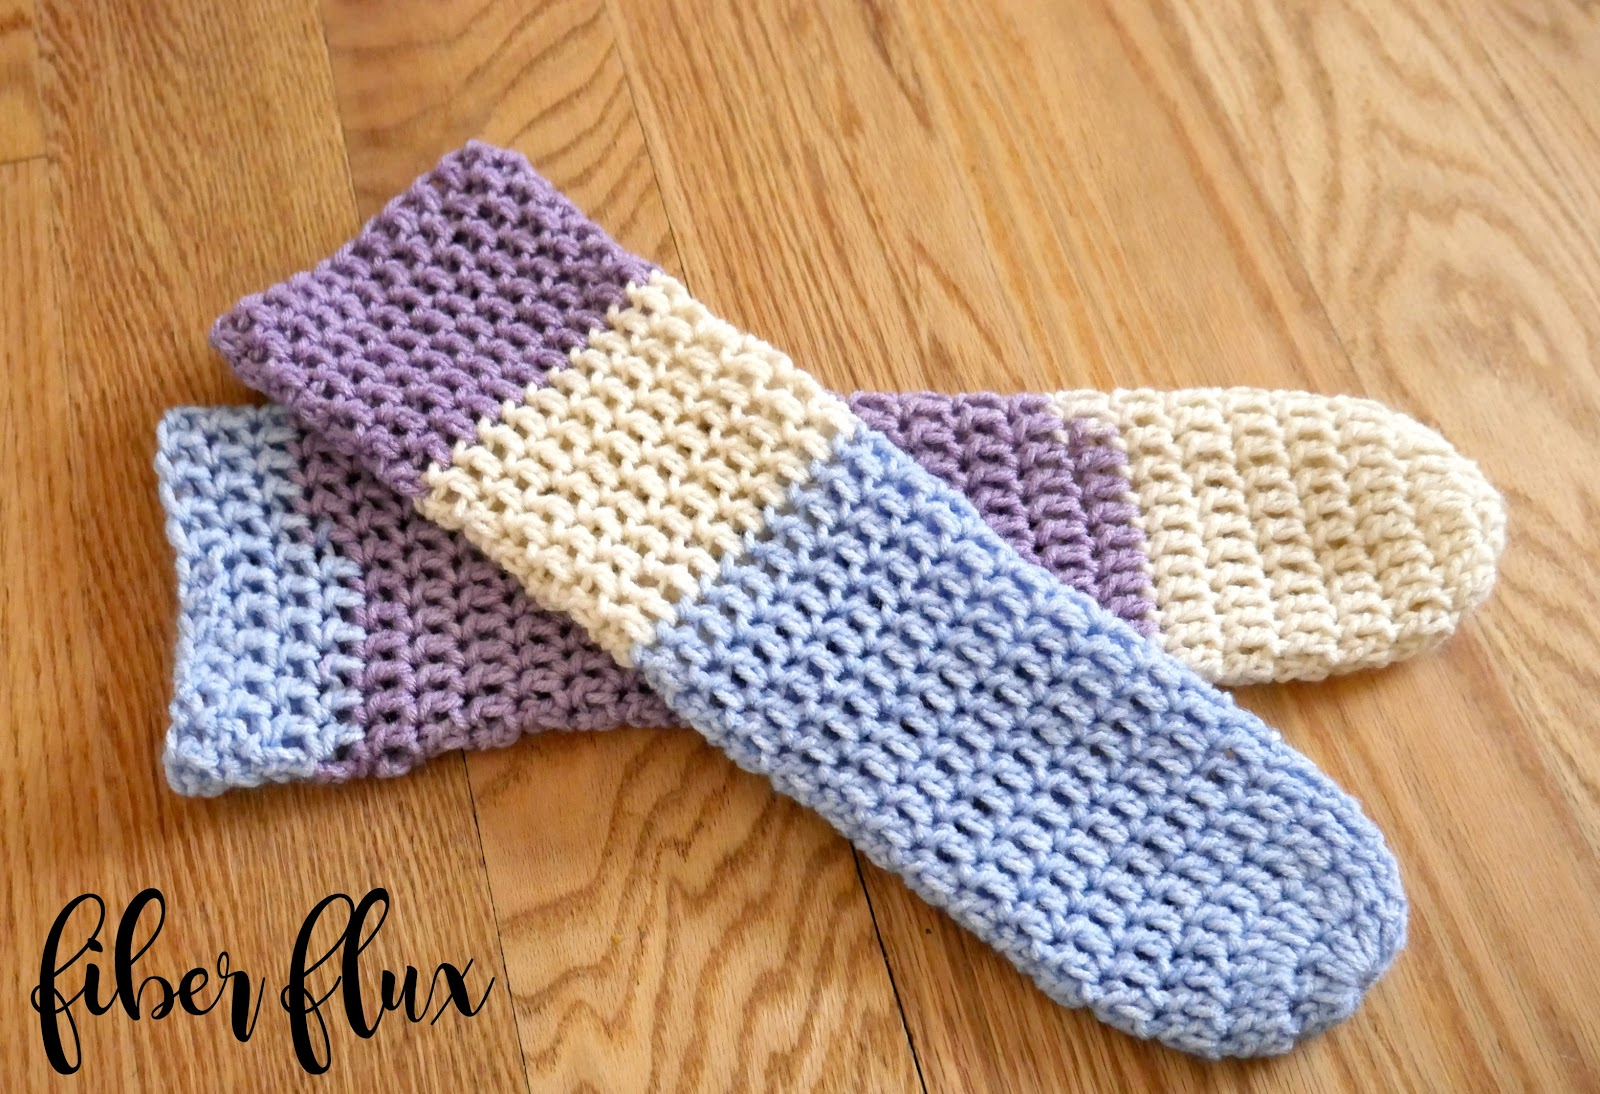 Knitting Socks Tutorial : The sock knitter s companion how to knit socks u review